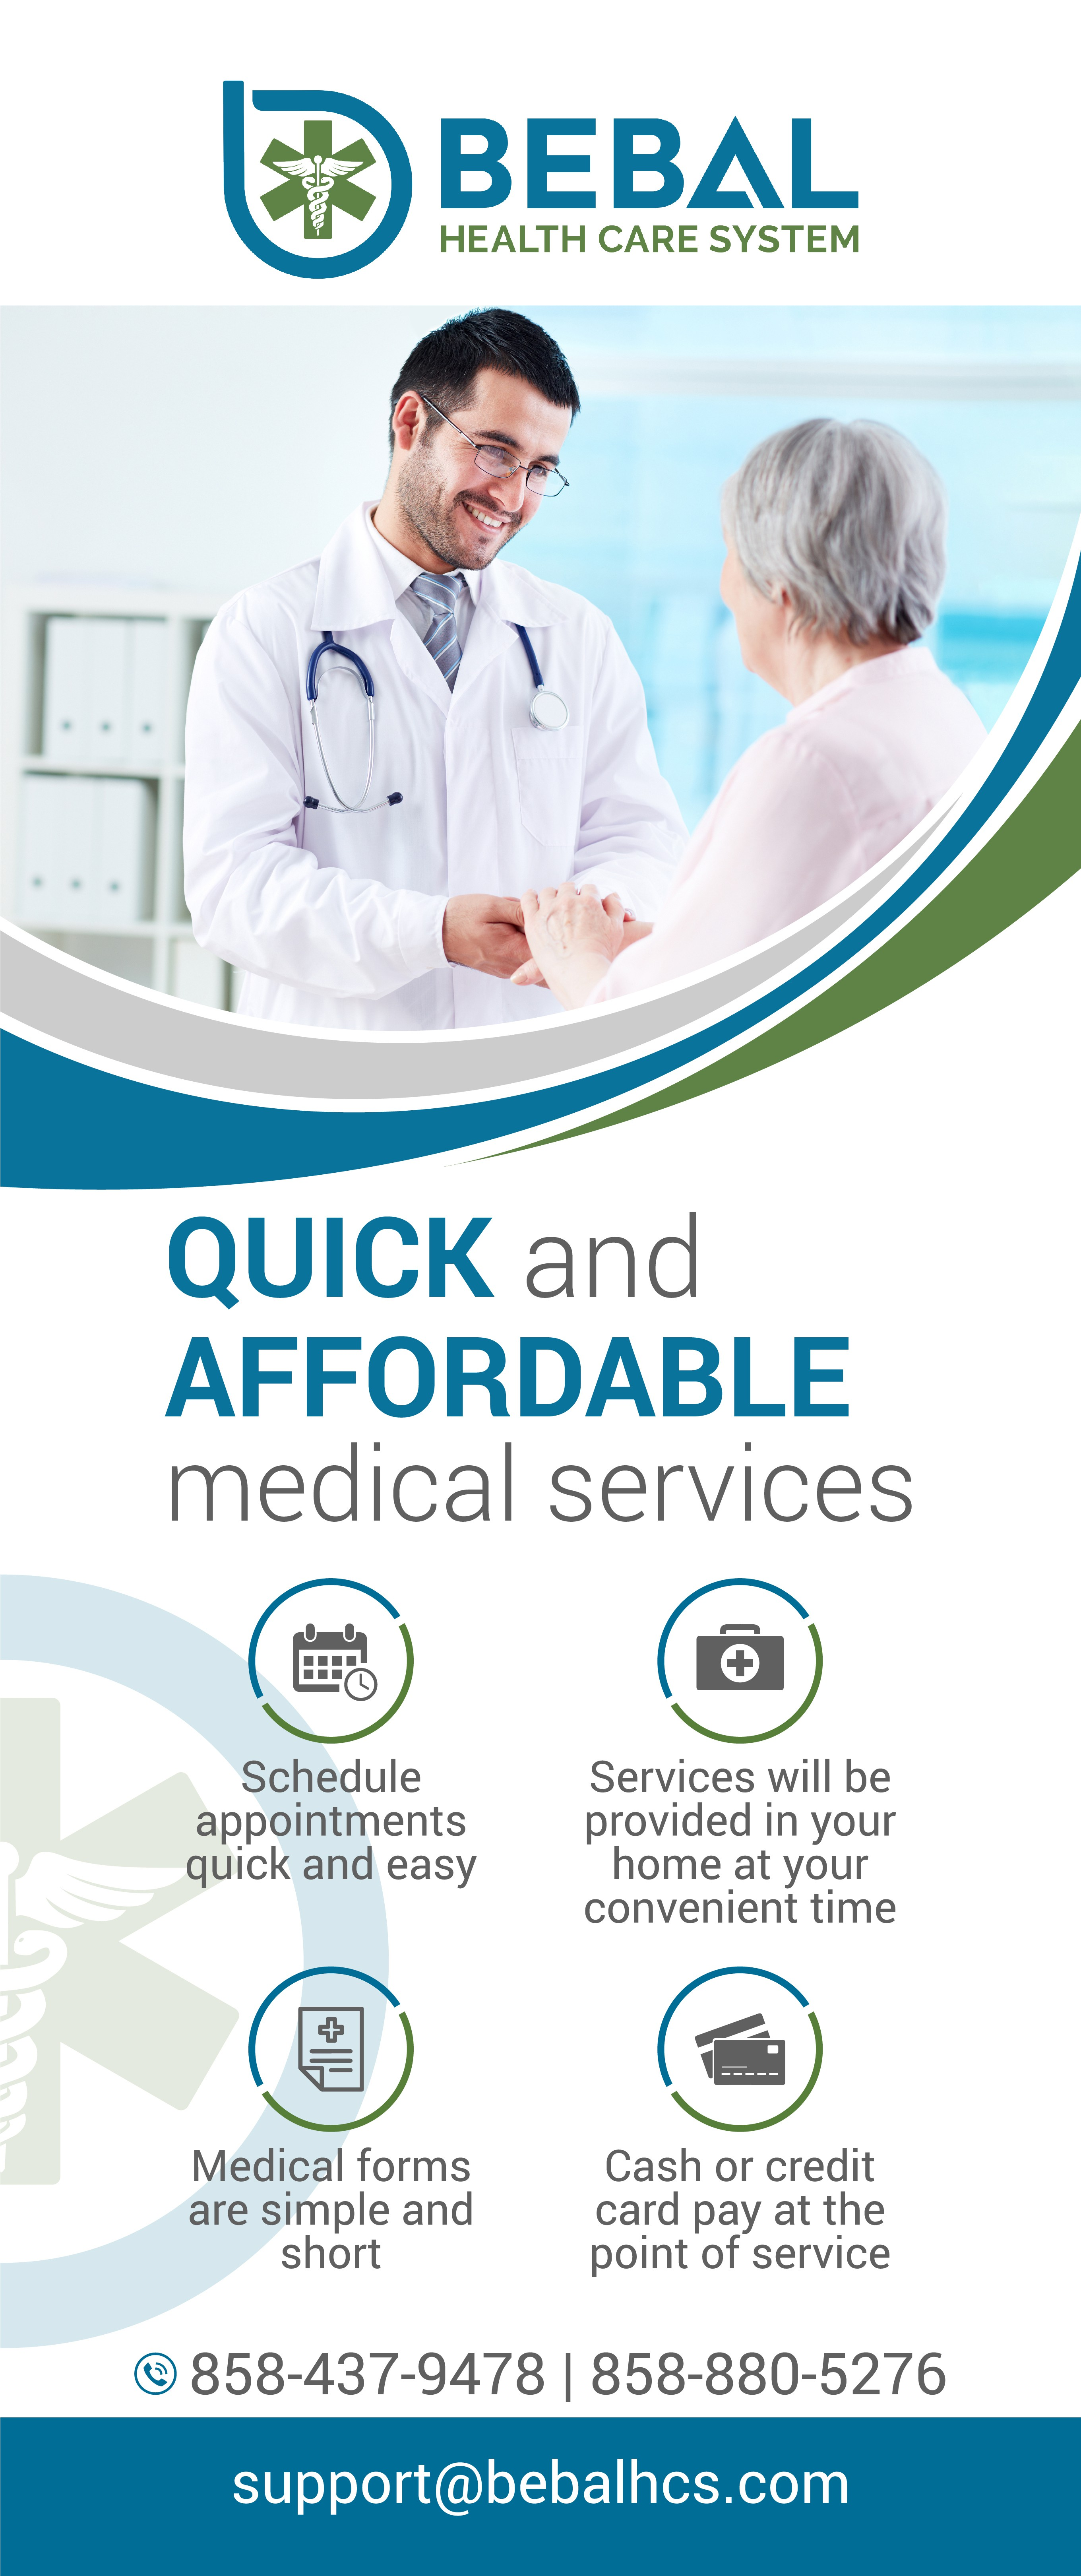 Health Care System needs a retractable trade show banner